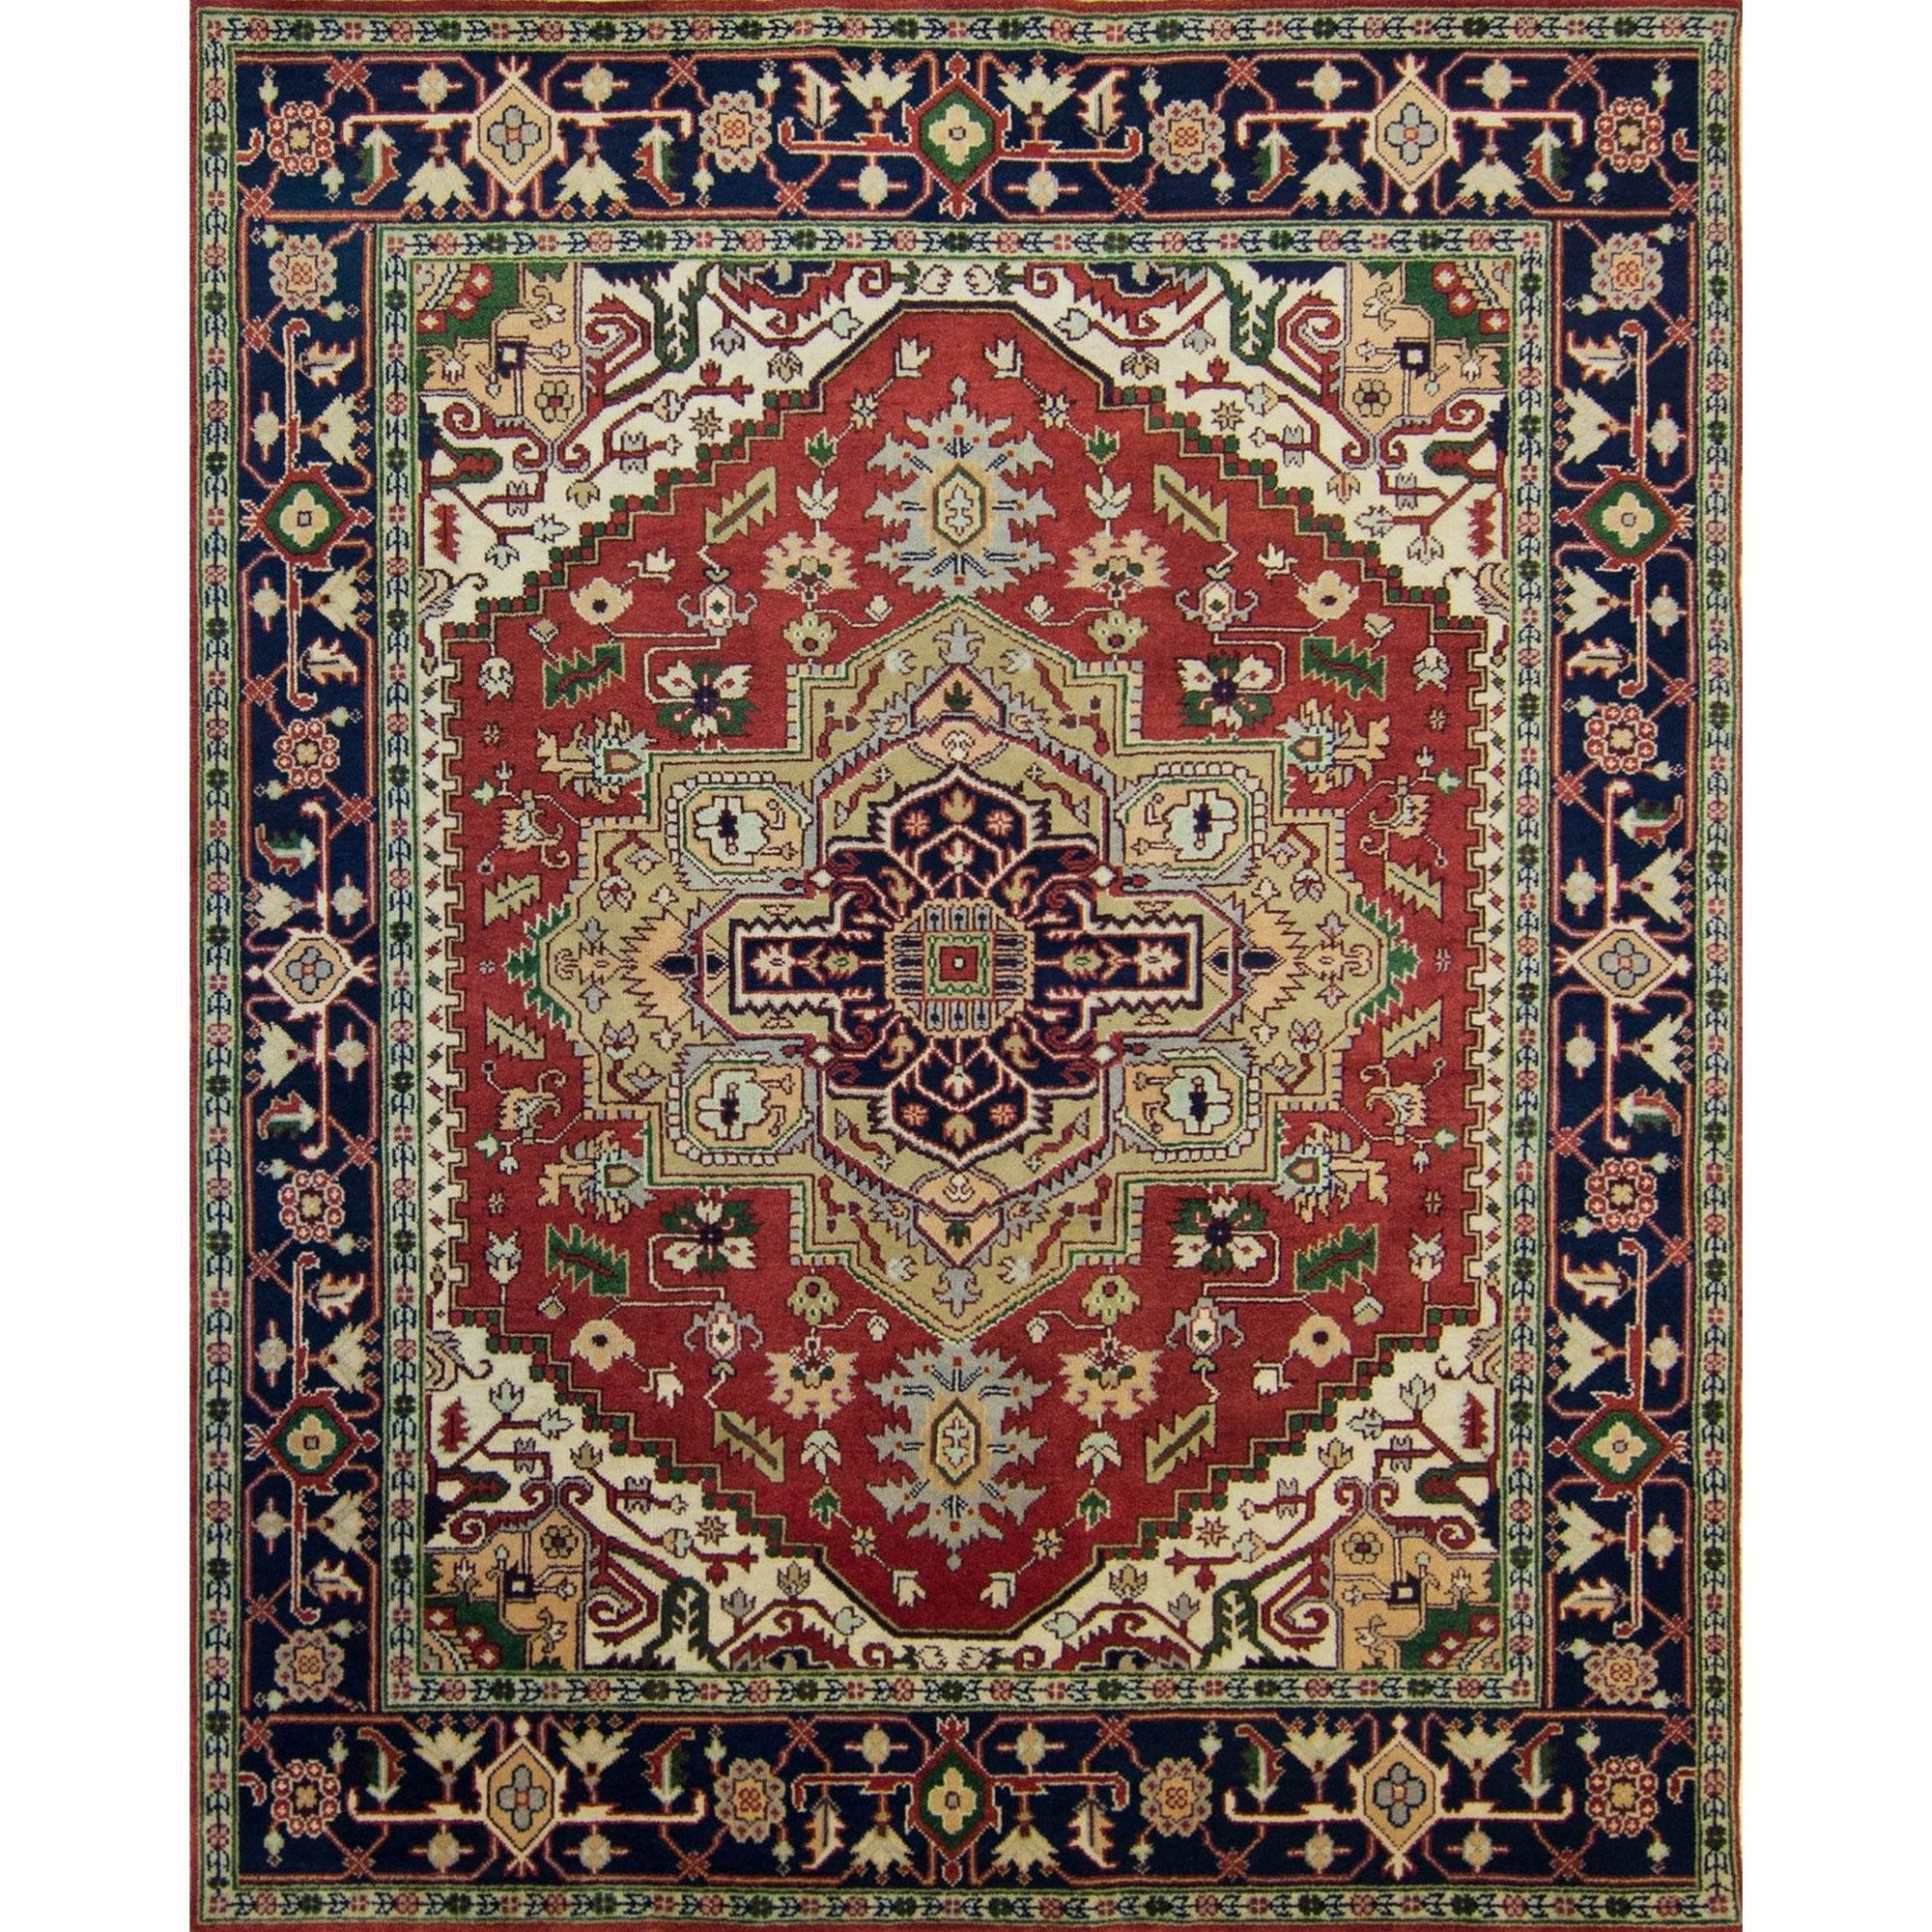 Hand-knotted Wool Persian Heriz Rug 238cm x 302cm Persian-Rug | House-of-Haghi | NewMarket | Auckland | NZ | Handmade Persian Rugs | Hand Knotted Persian Rugs